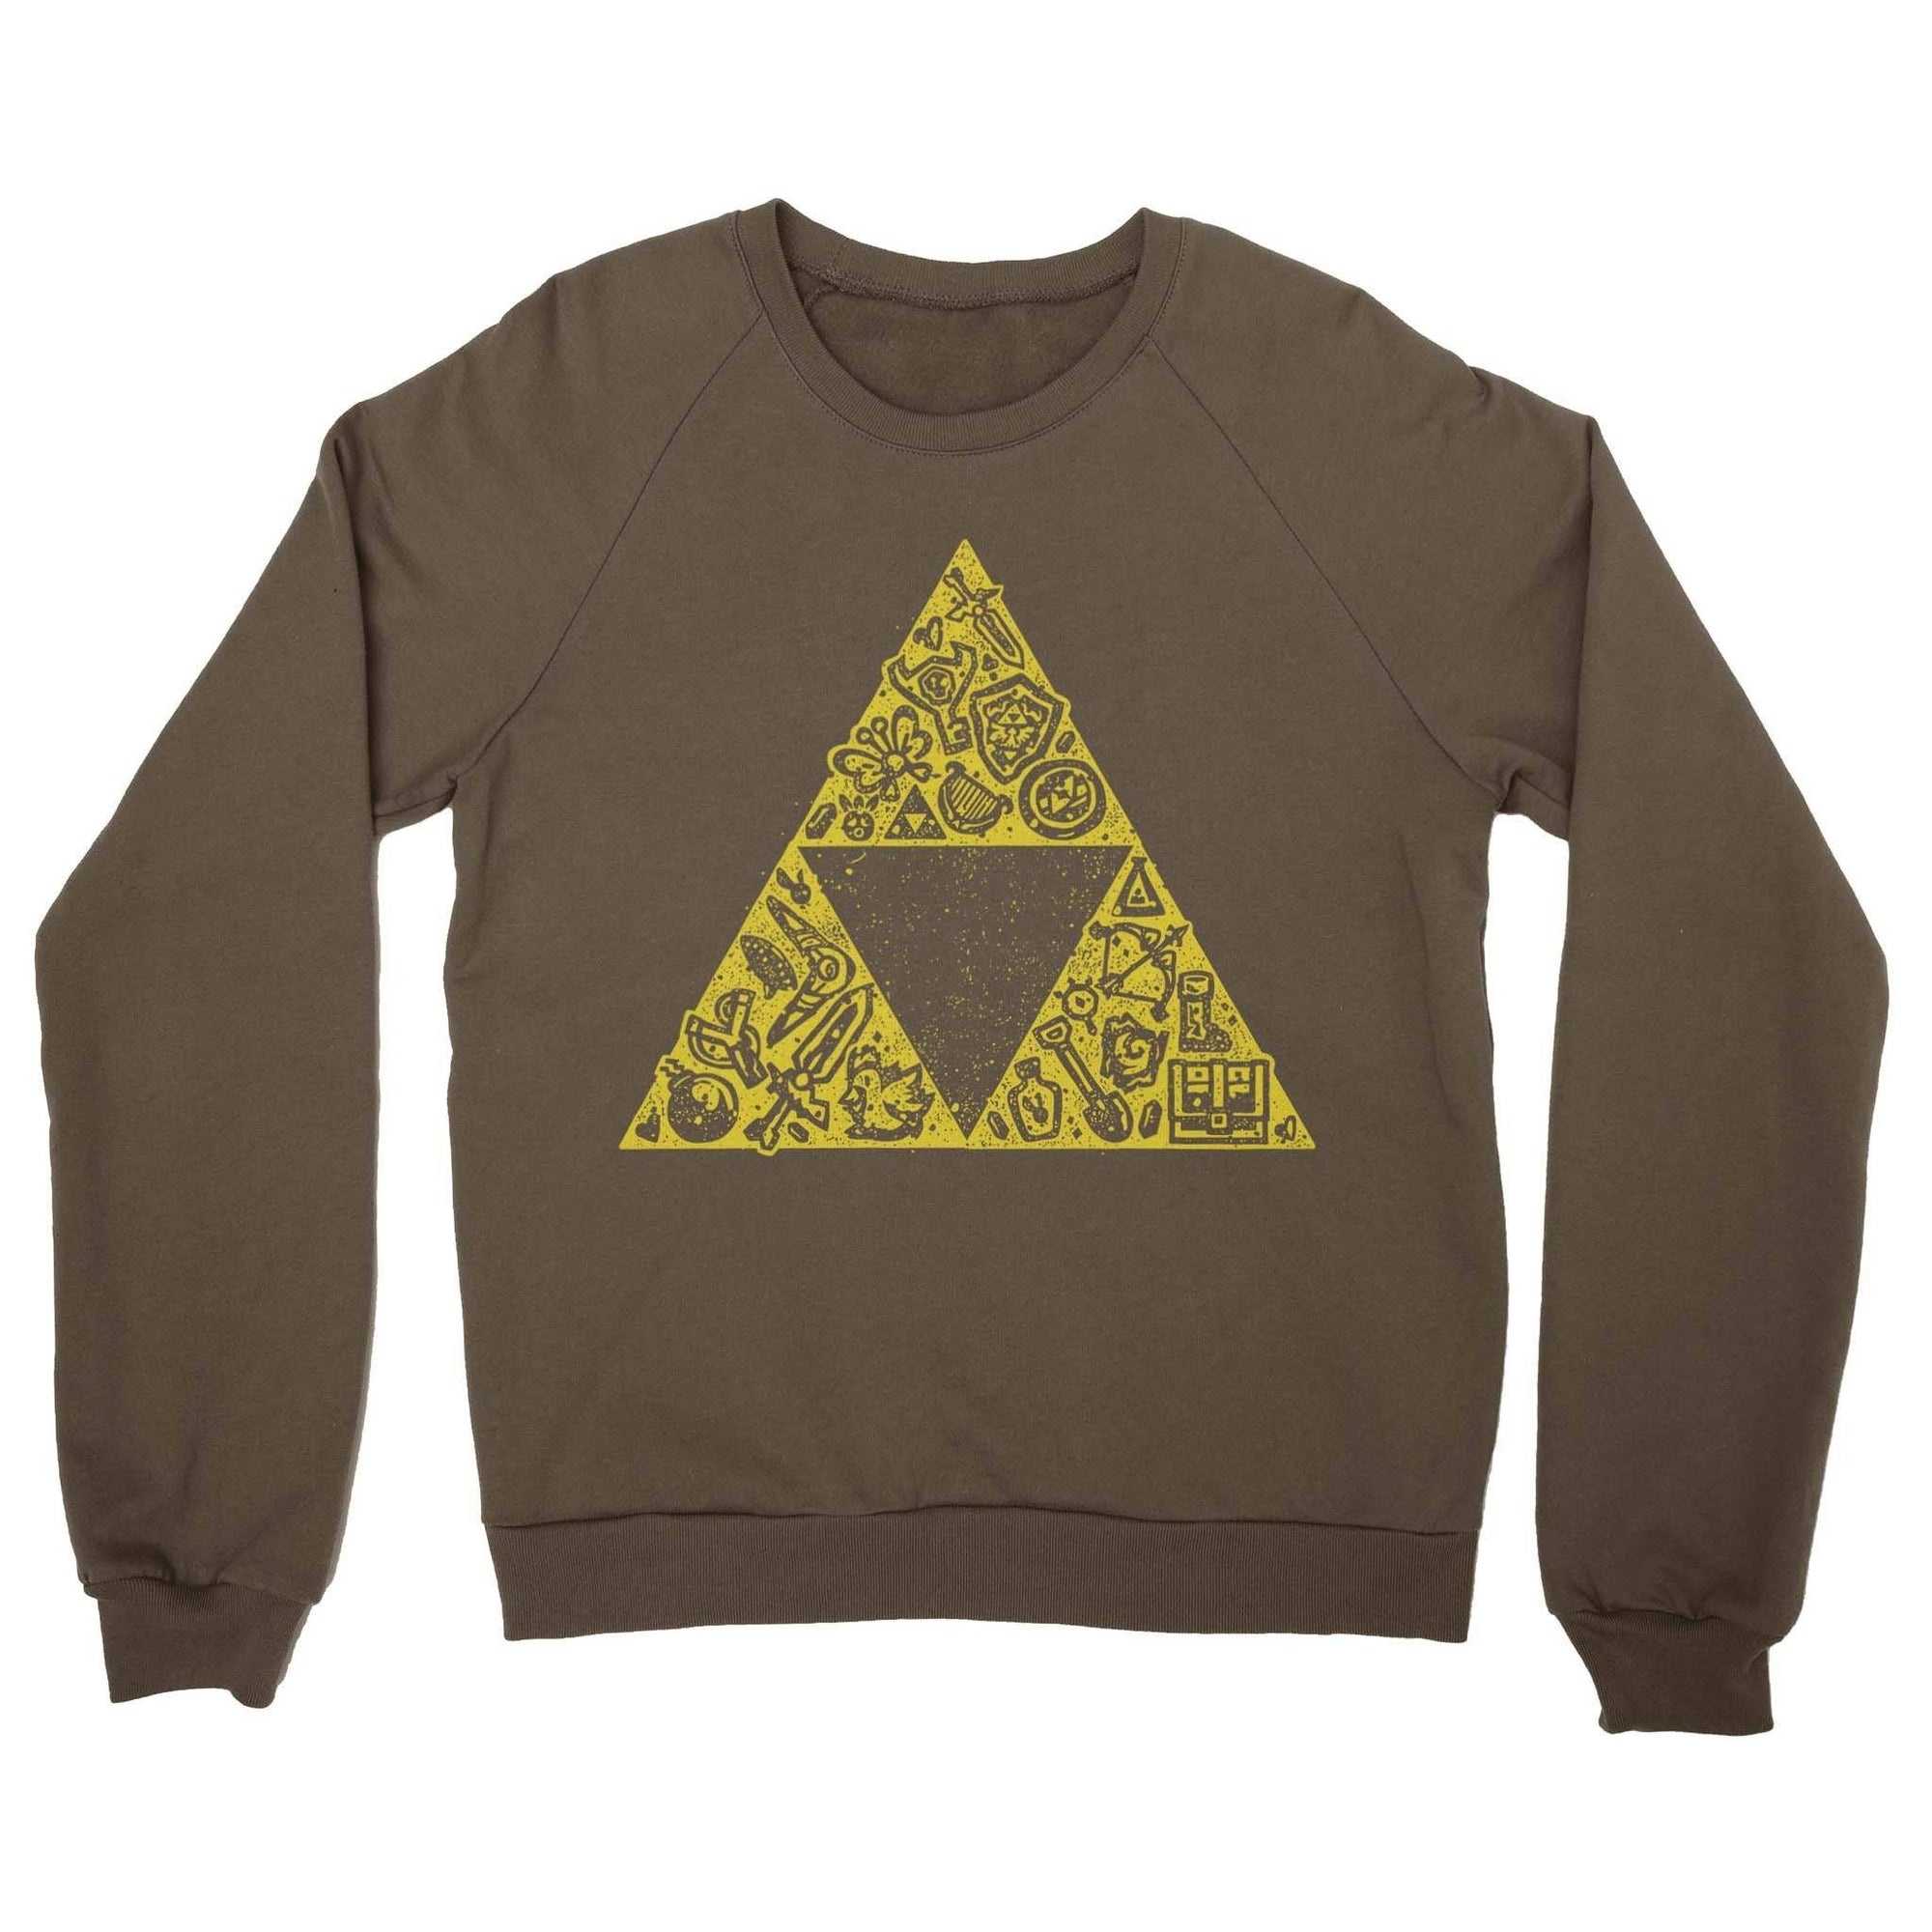 Hyrule Collector Crewneck Sweatshirt-Crew Neck Sweatshirts-Shirtasaurus-S-Brown-Shirtasaurus